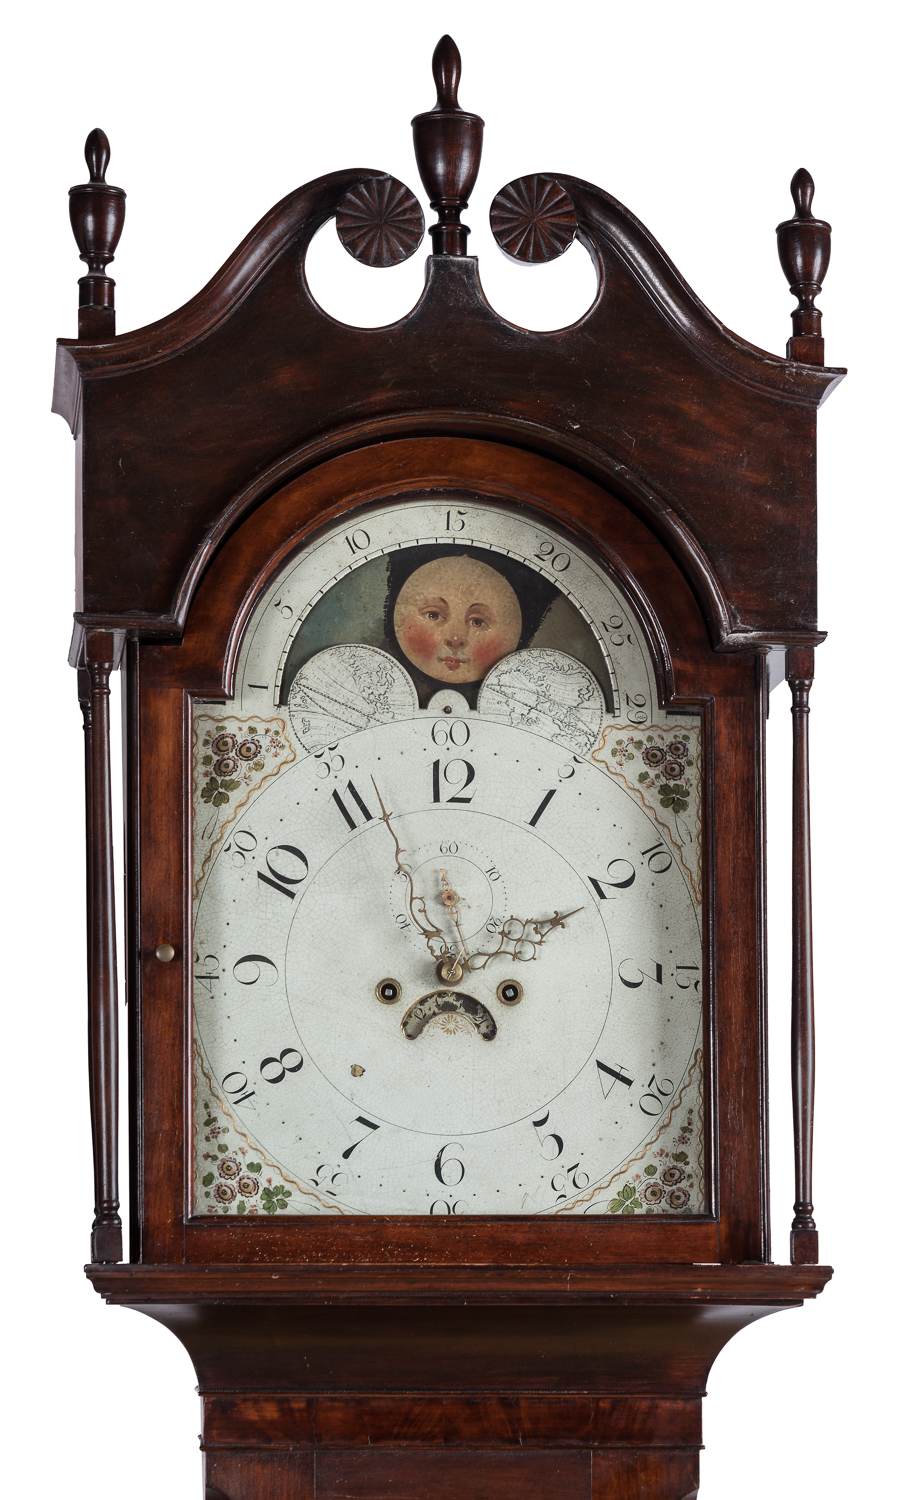 Image: Blanchard - McMurray Clock